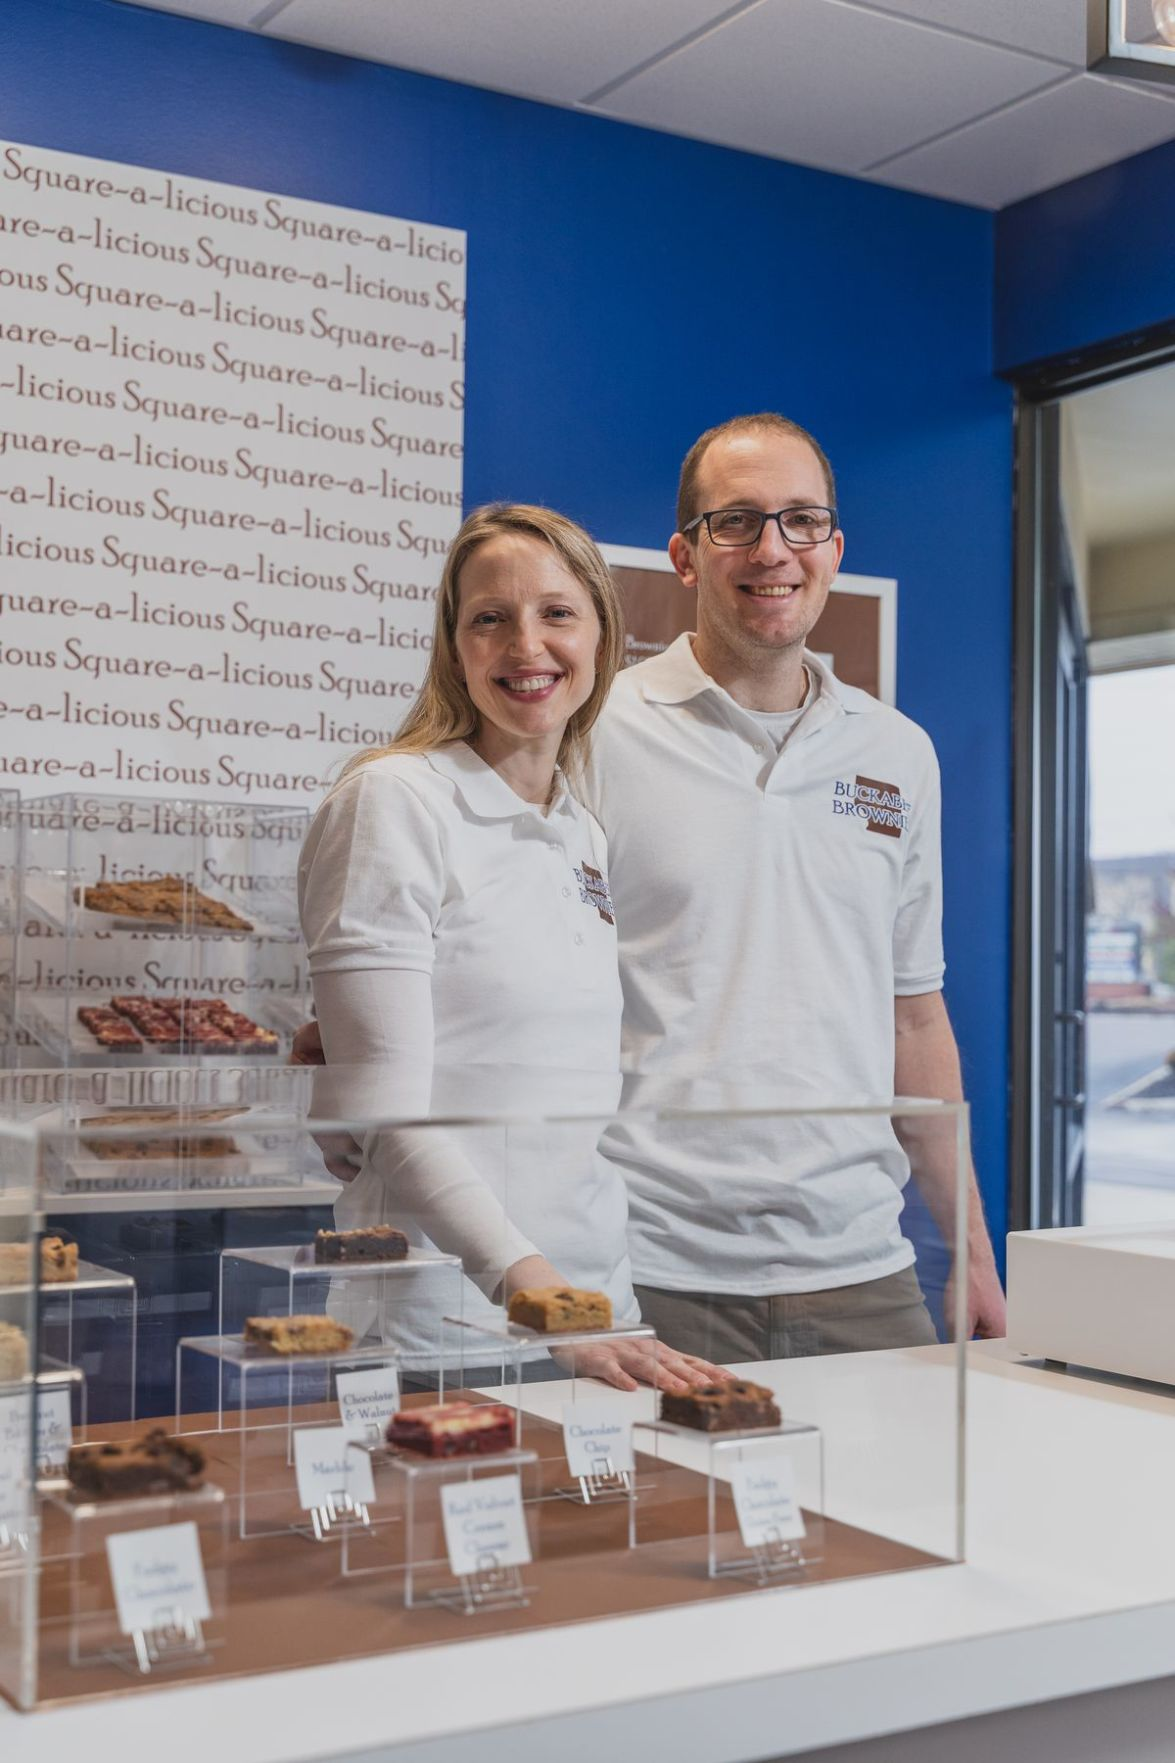 Miriam Spitz and Tommer Kahan, owners of Buckabee Brownies, started the business from their home kitchen.